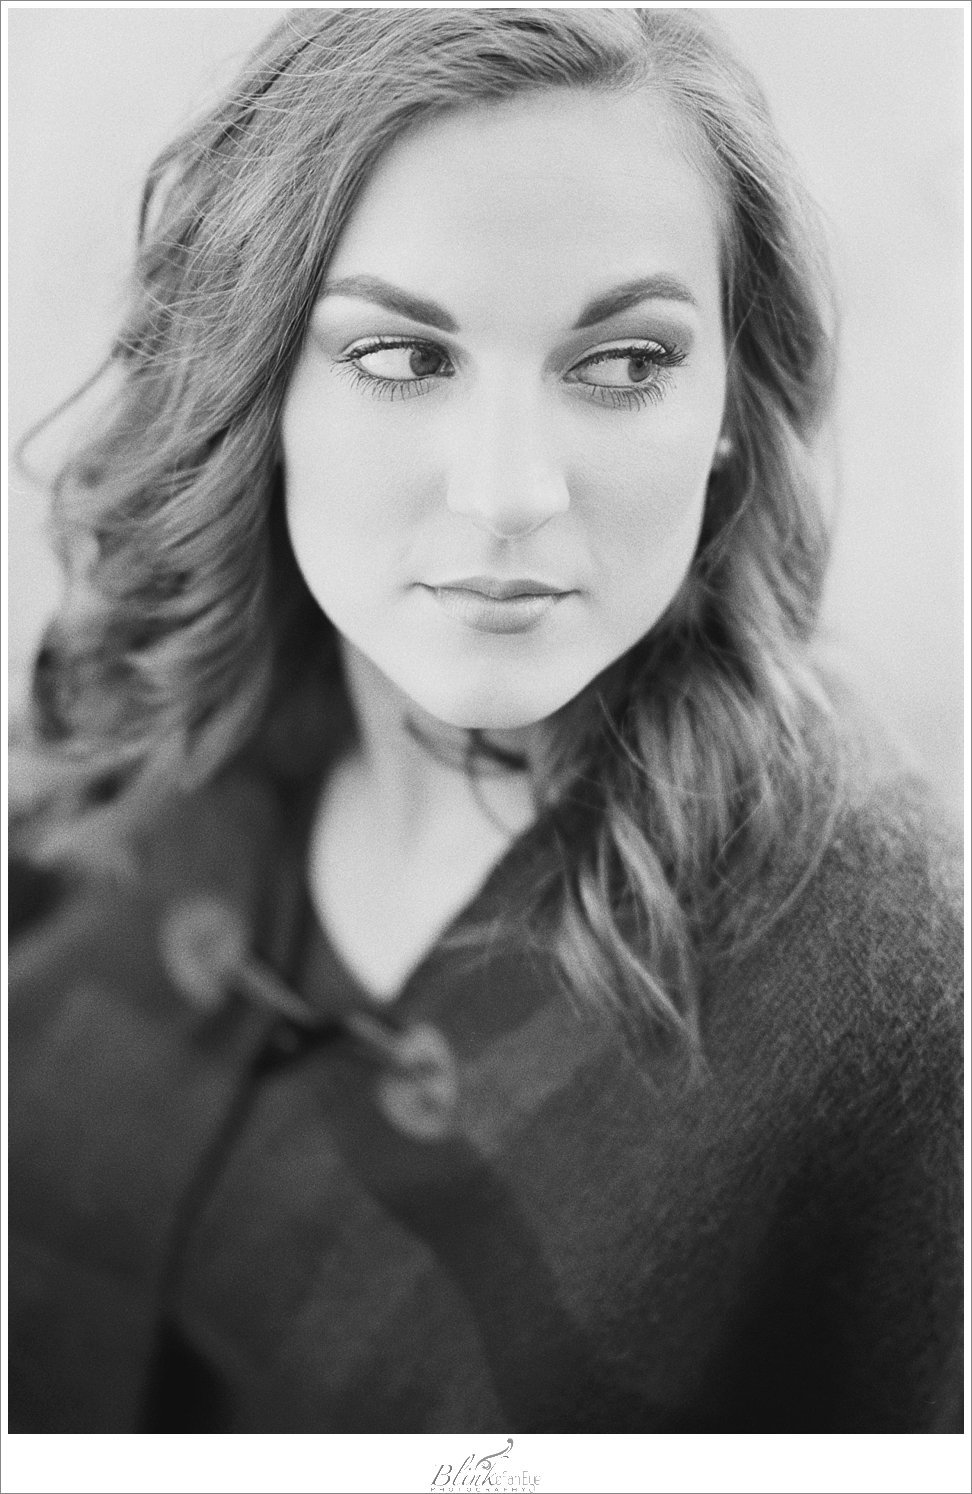 Black and White Film portrait.